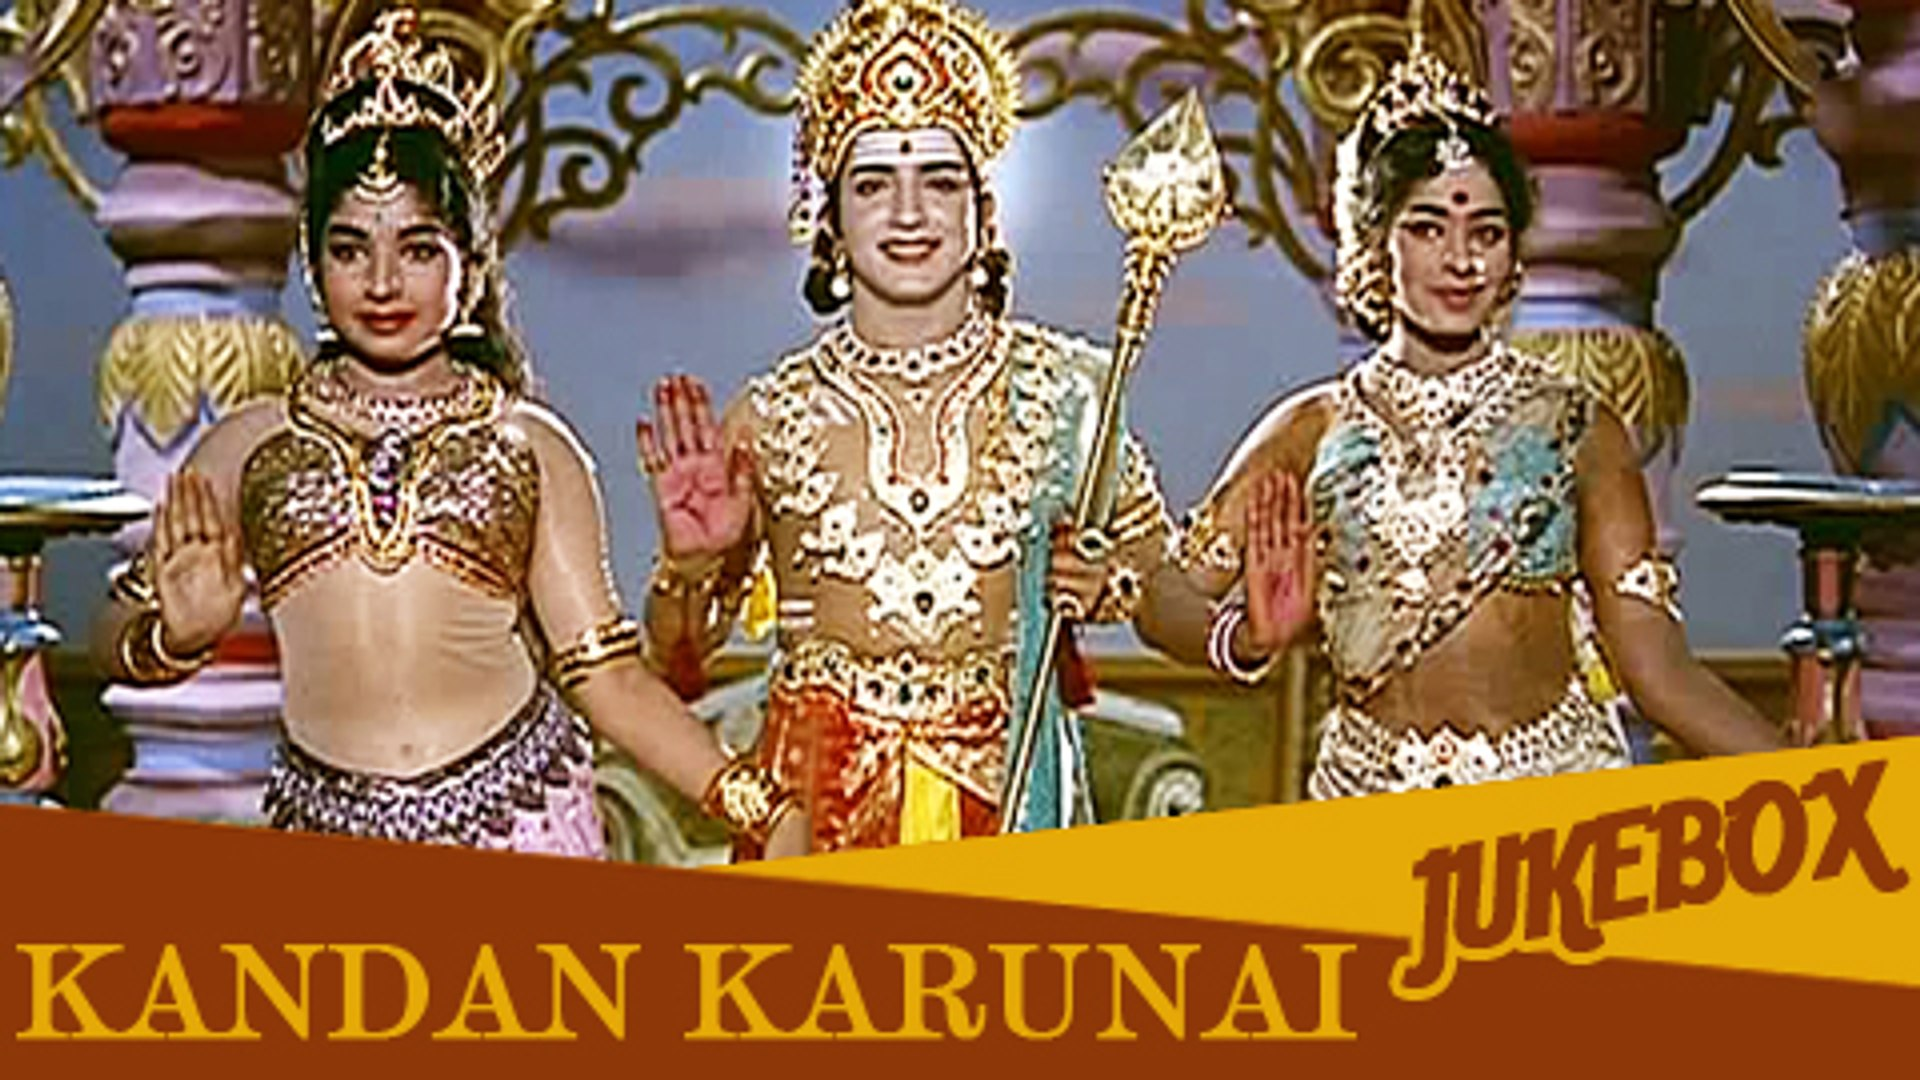 Kandan Karunai Video Songs - Devotional Tamil Movie Songs - K. V. Mahadevan Hits